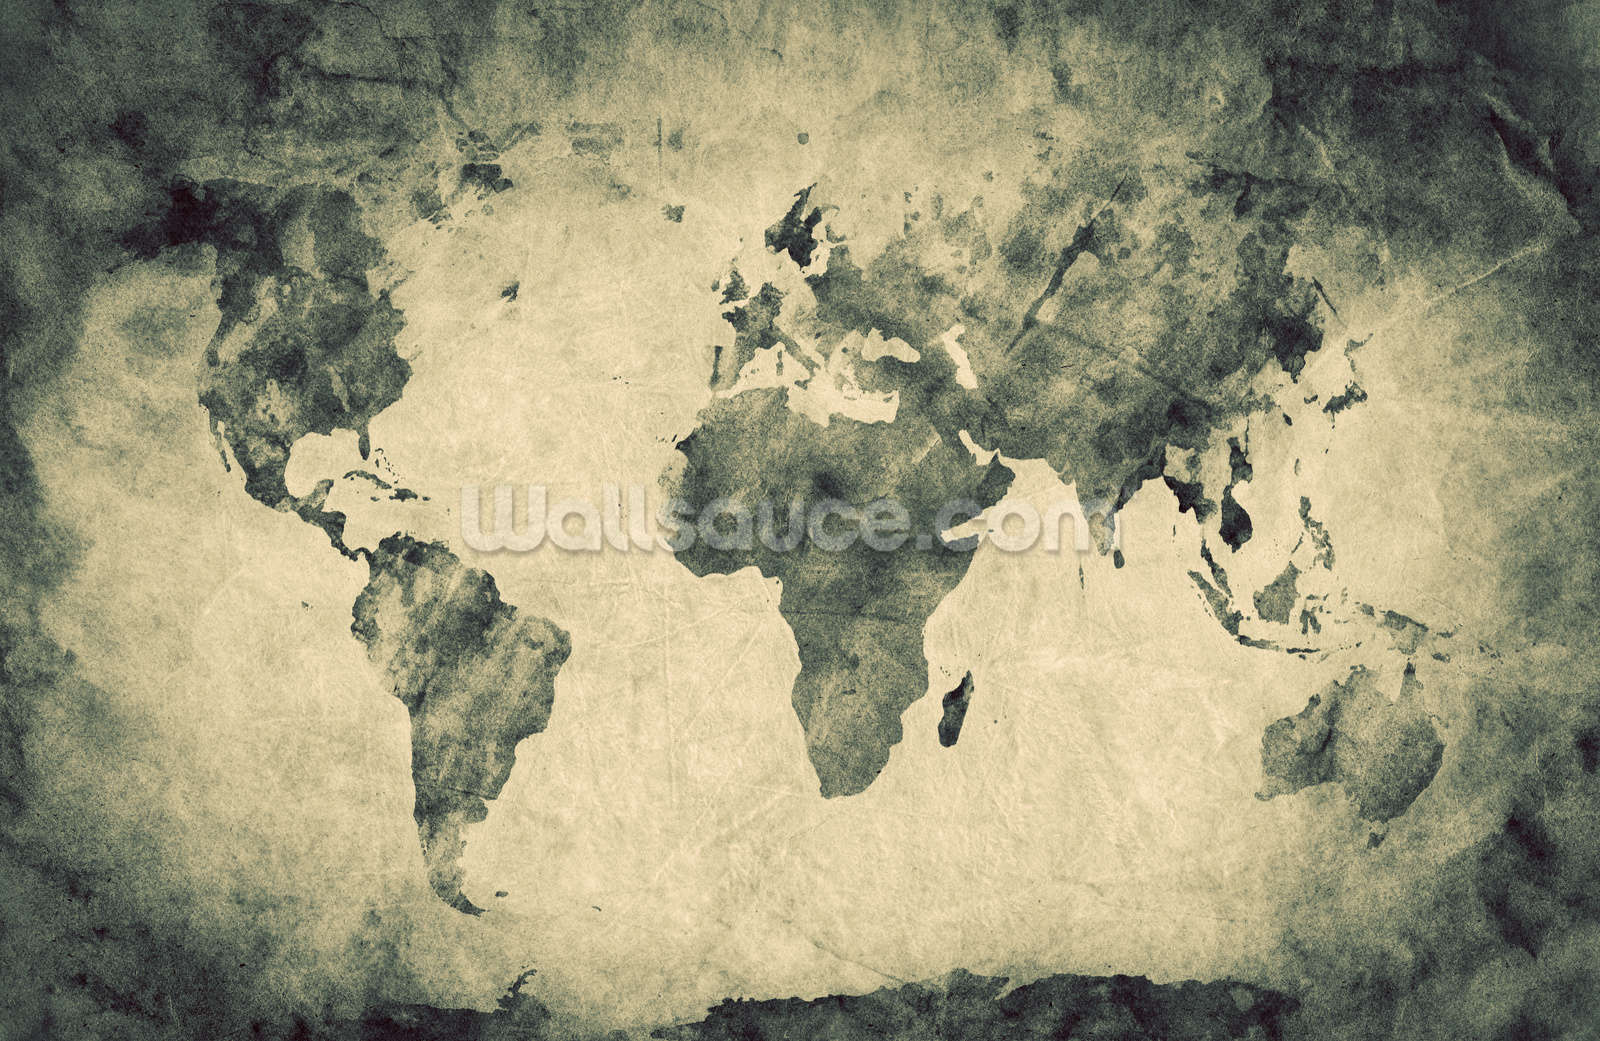 Ancient world map sketch wallpaper wall mural wallsauce norway ancient world map sketch wall mural photo wallpaper gumiabroncs